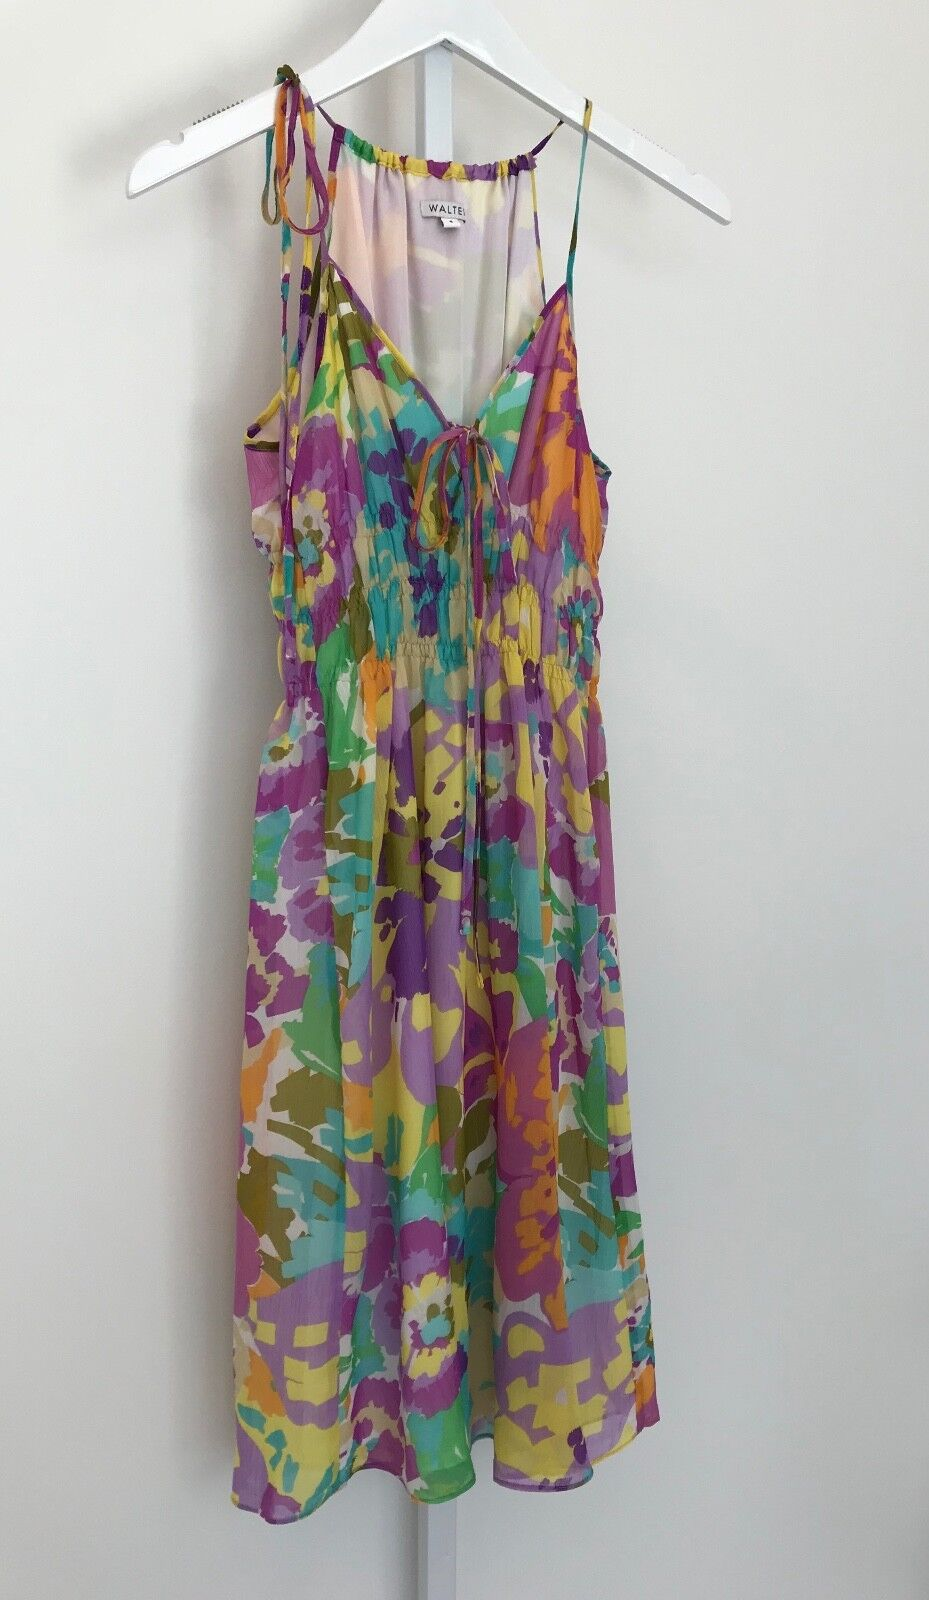 WALTER BEAUTIFUL SPRING SUMMER FLORAL SPAGHETTI STRAP DRESS WITH TIES SIZE 4